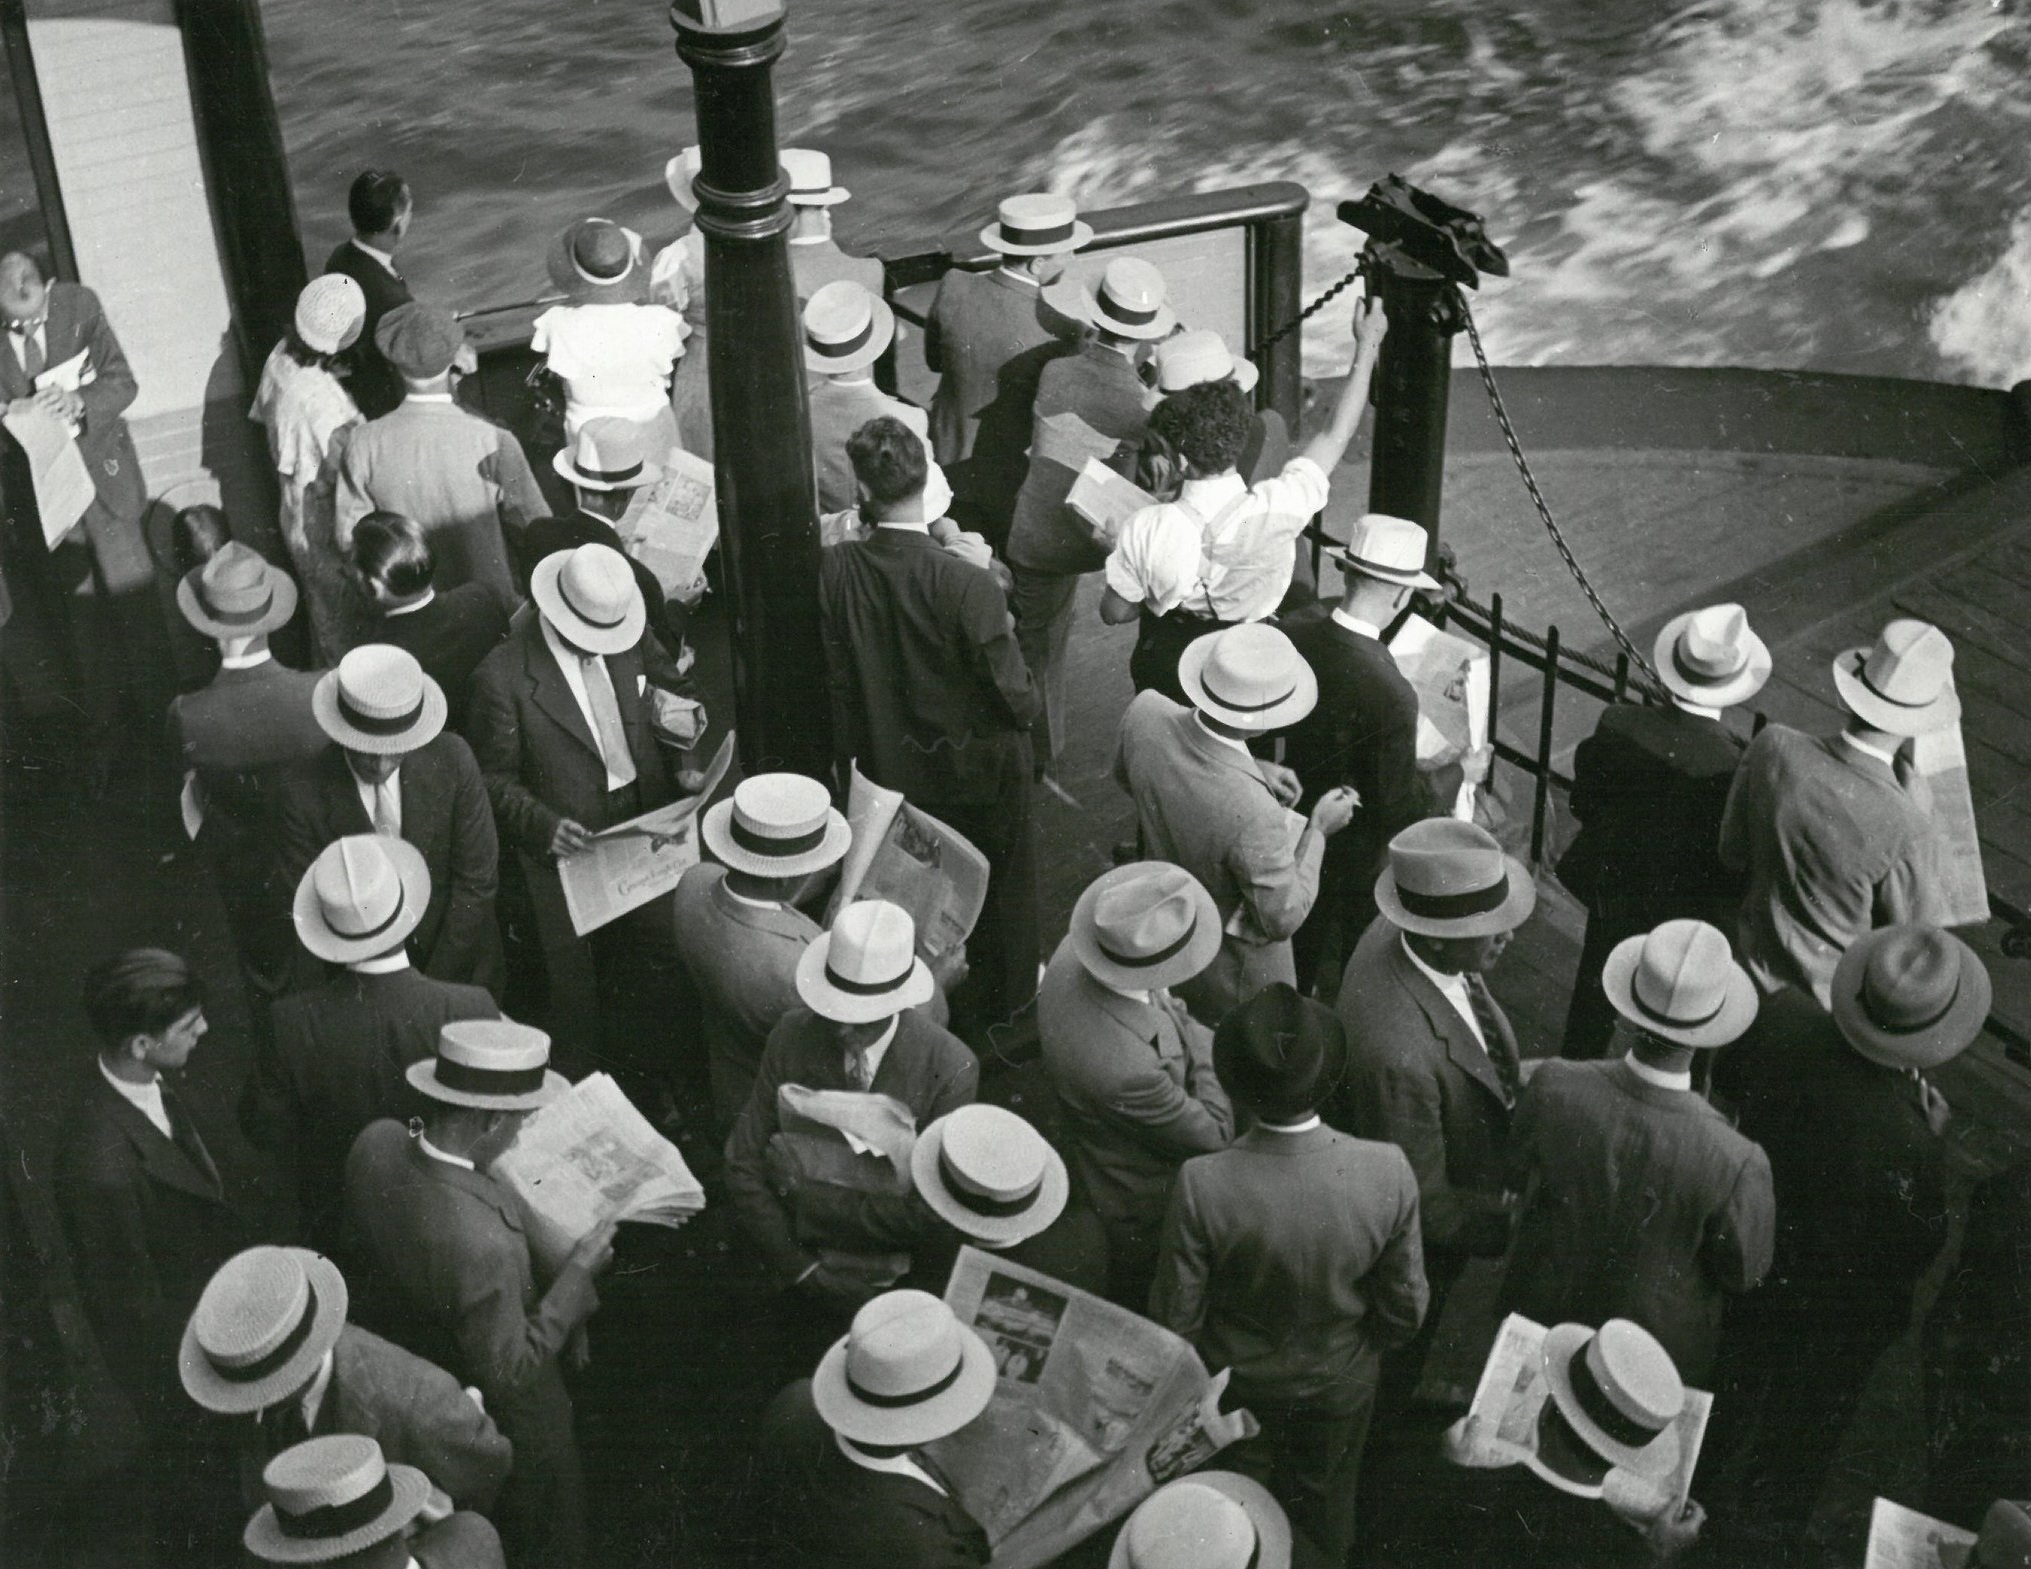 Commuters on the ferry from Hoboken, N.J., to Barclay Street, circa. 1937. WPA Federal Writers' Project photograph, NYC Municipal Archives.